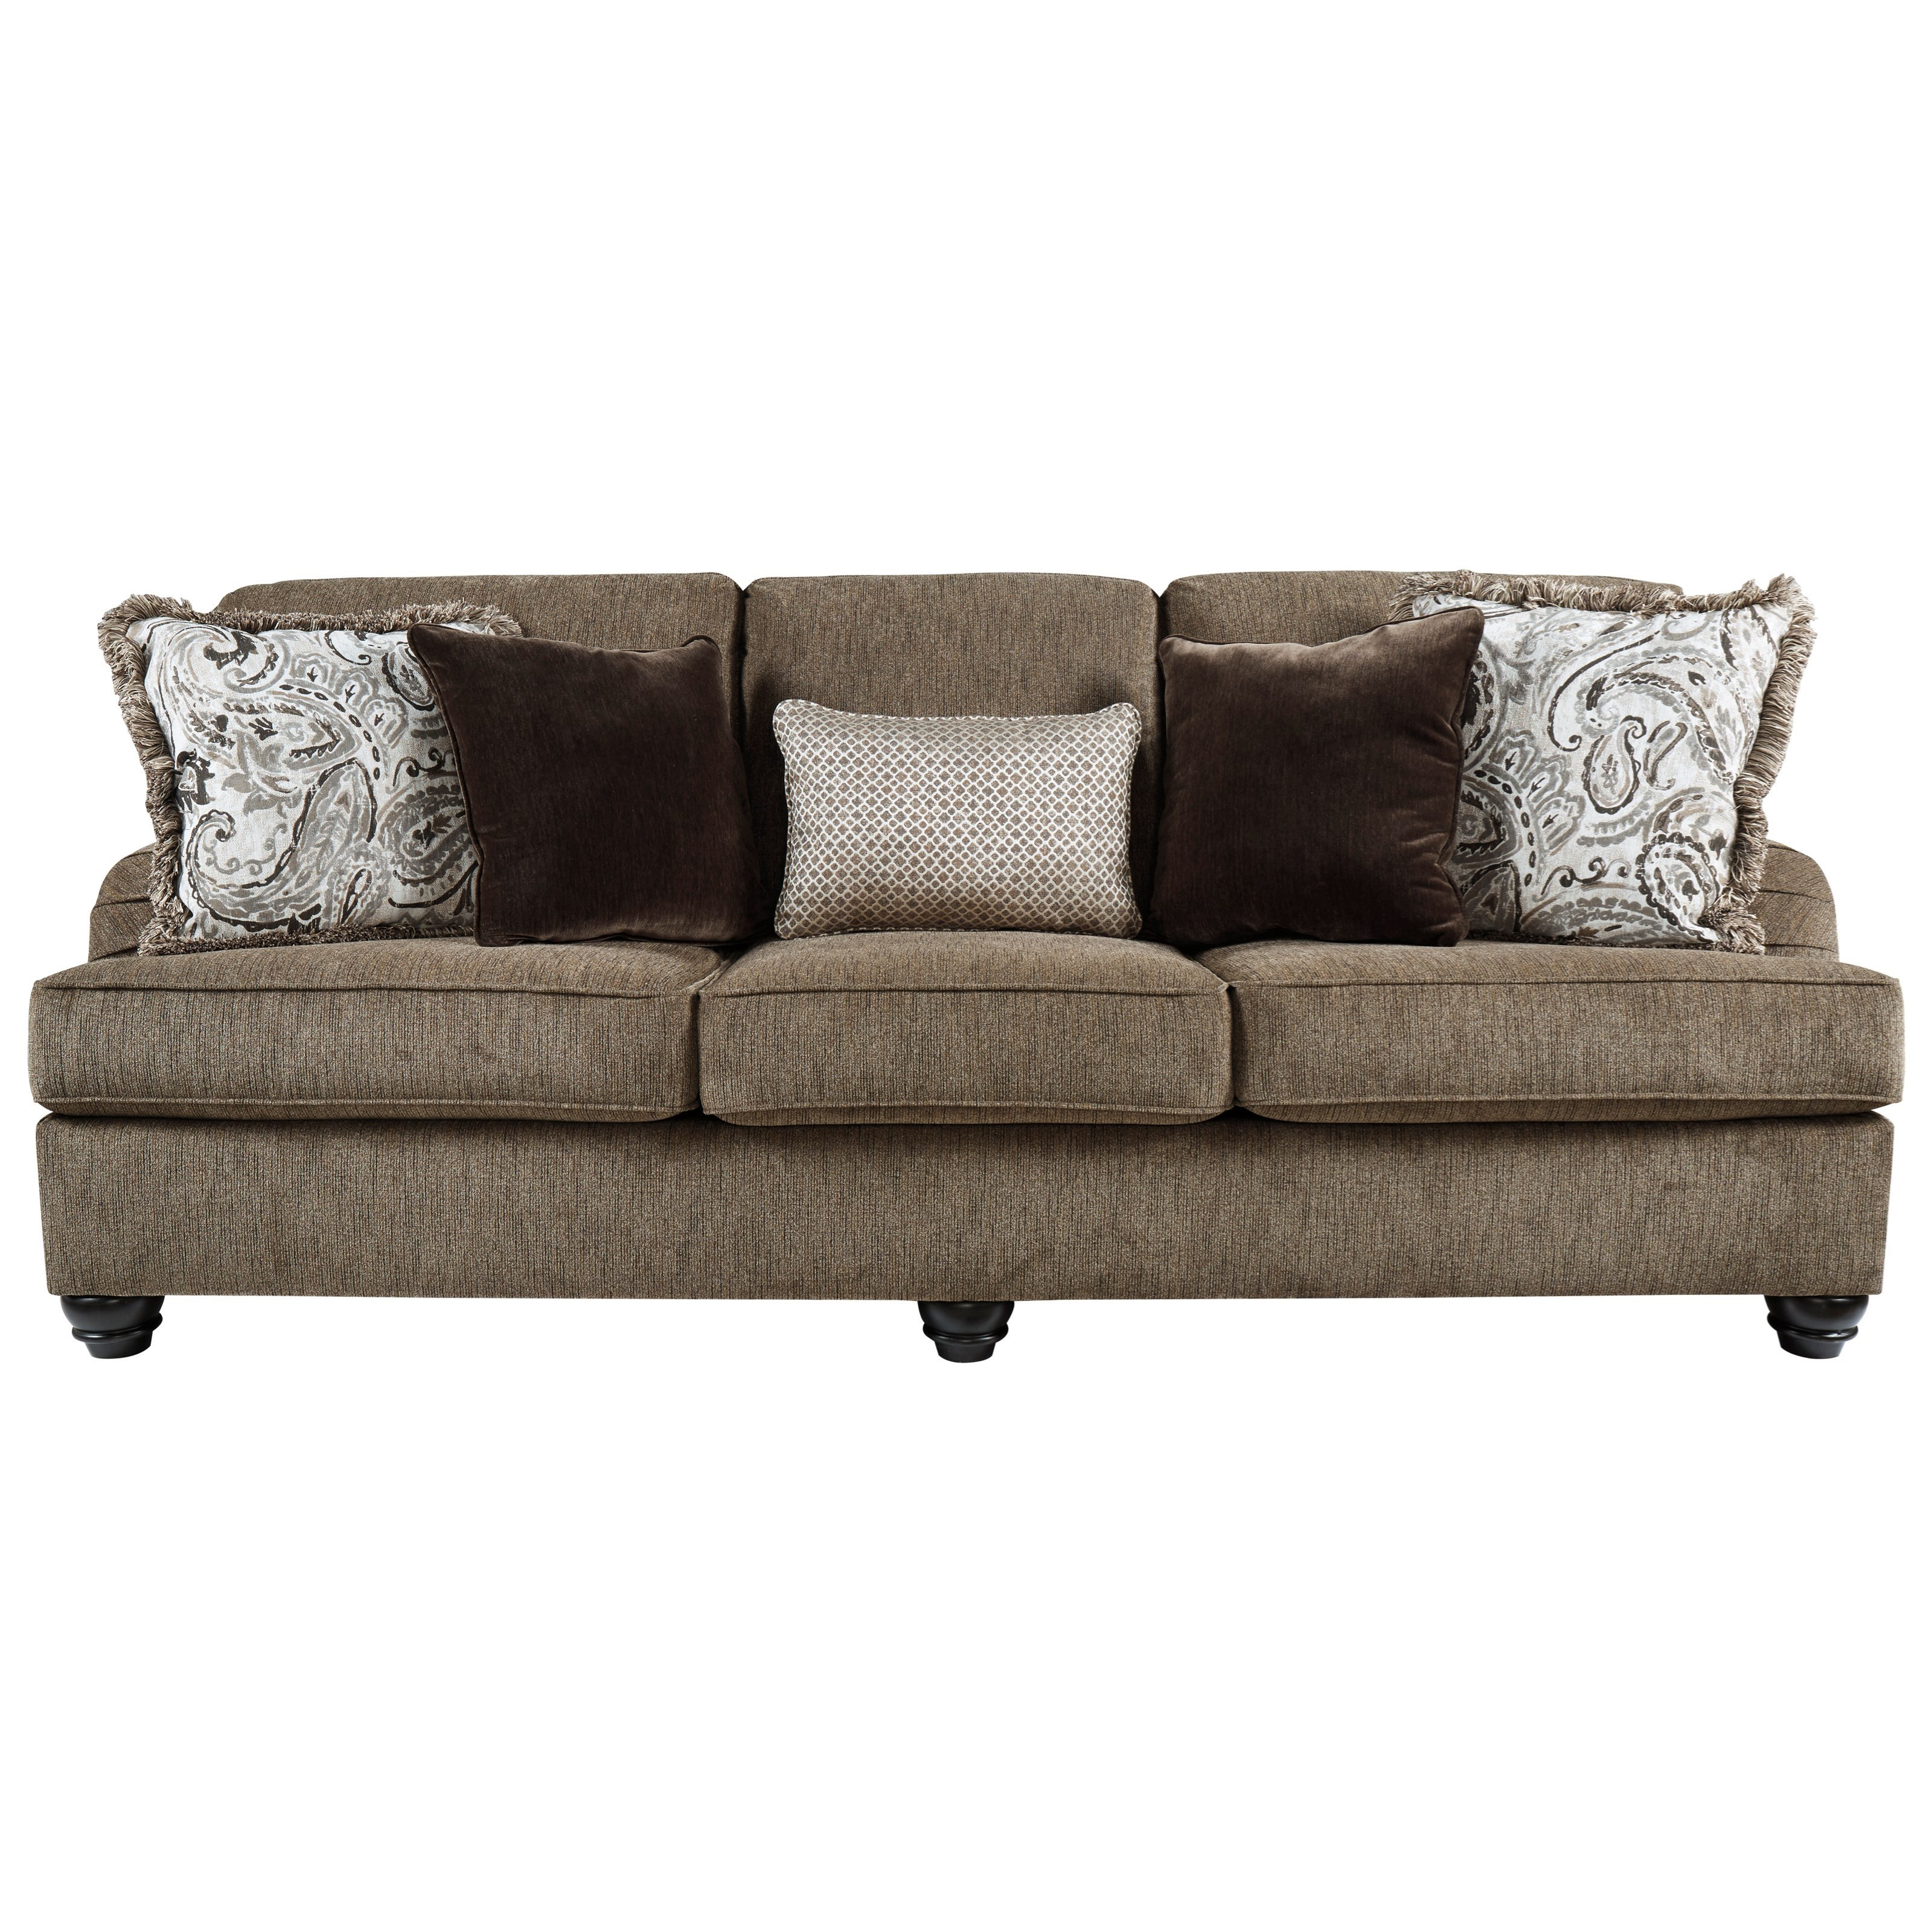 Braemar Sofa by Benchcraft at Miller Waldrop Furniture and Decor